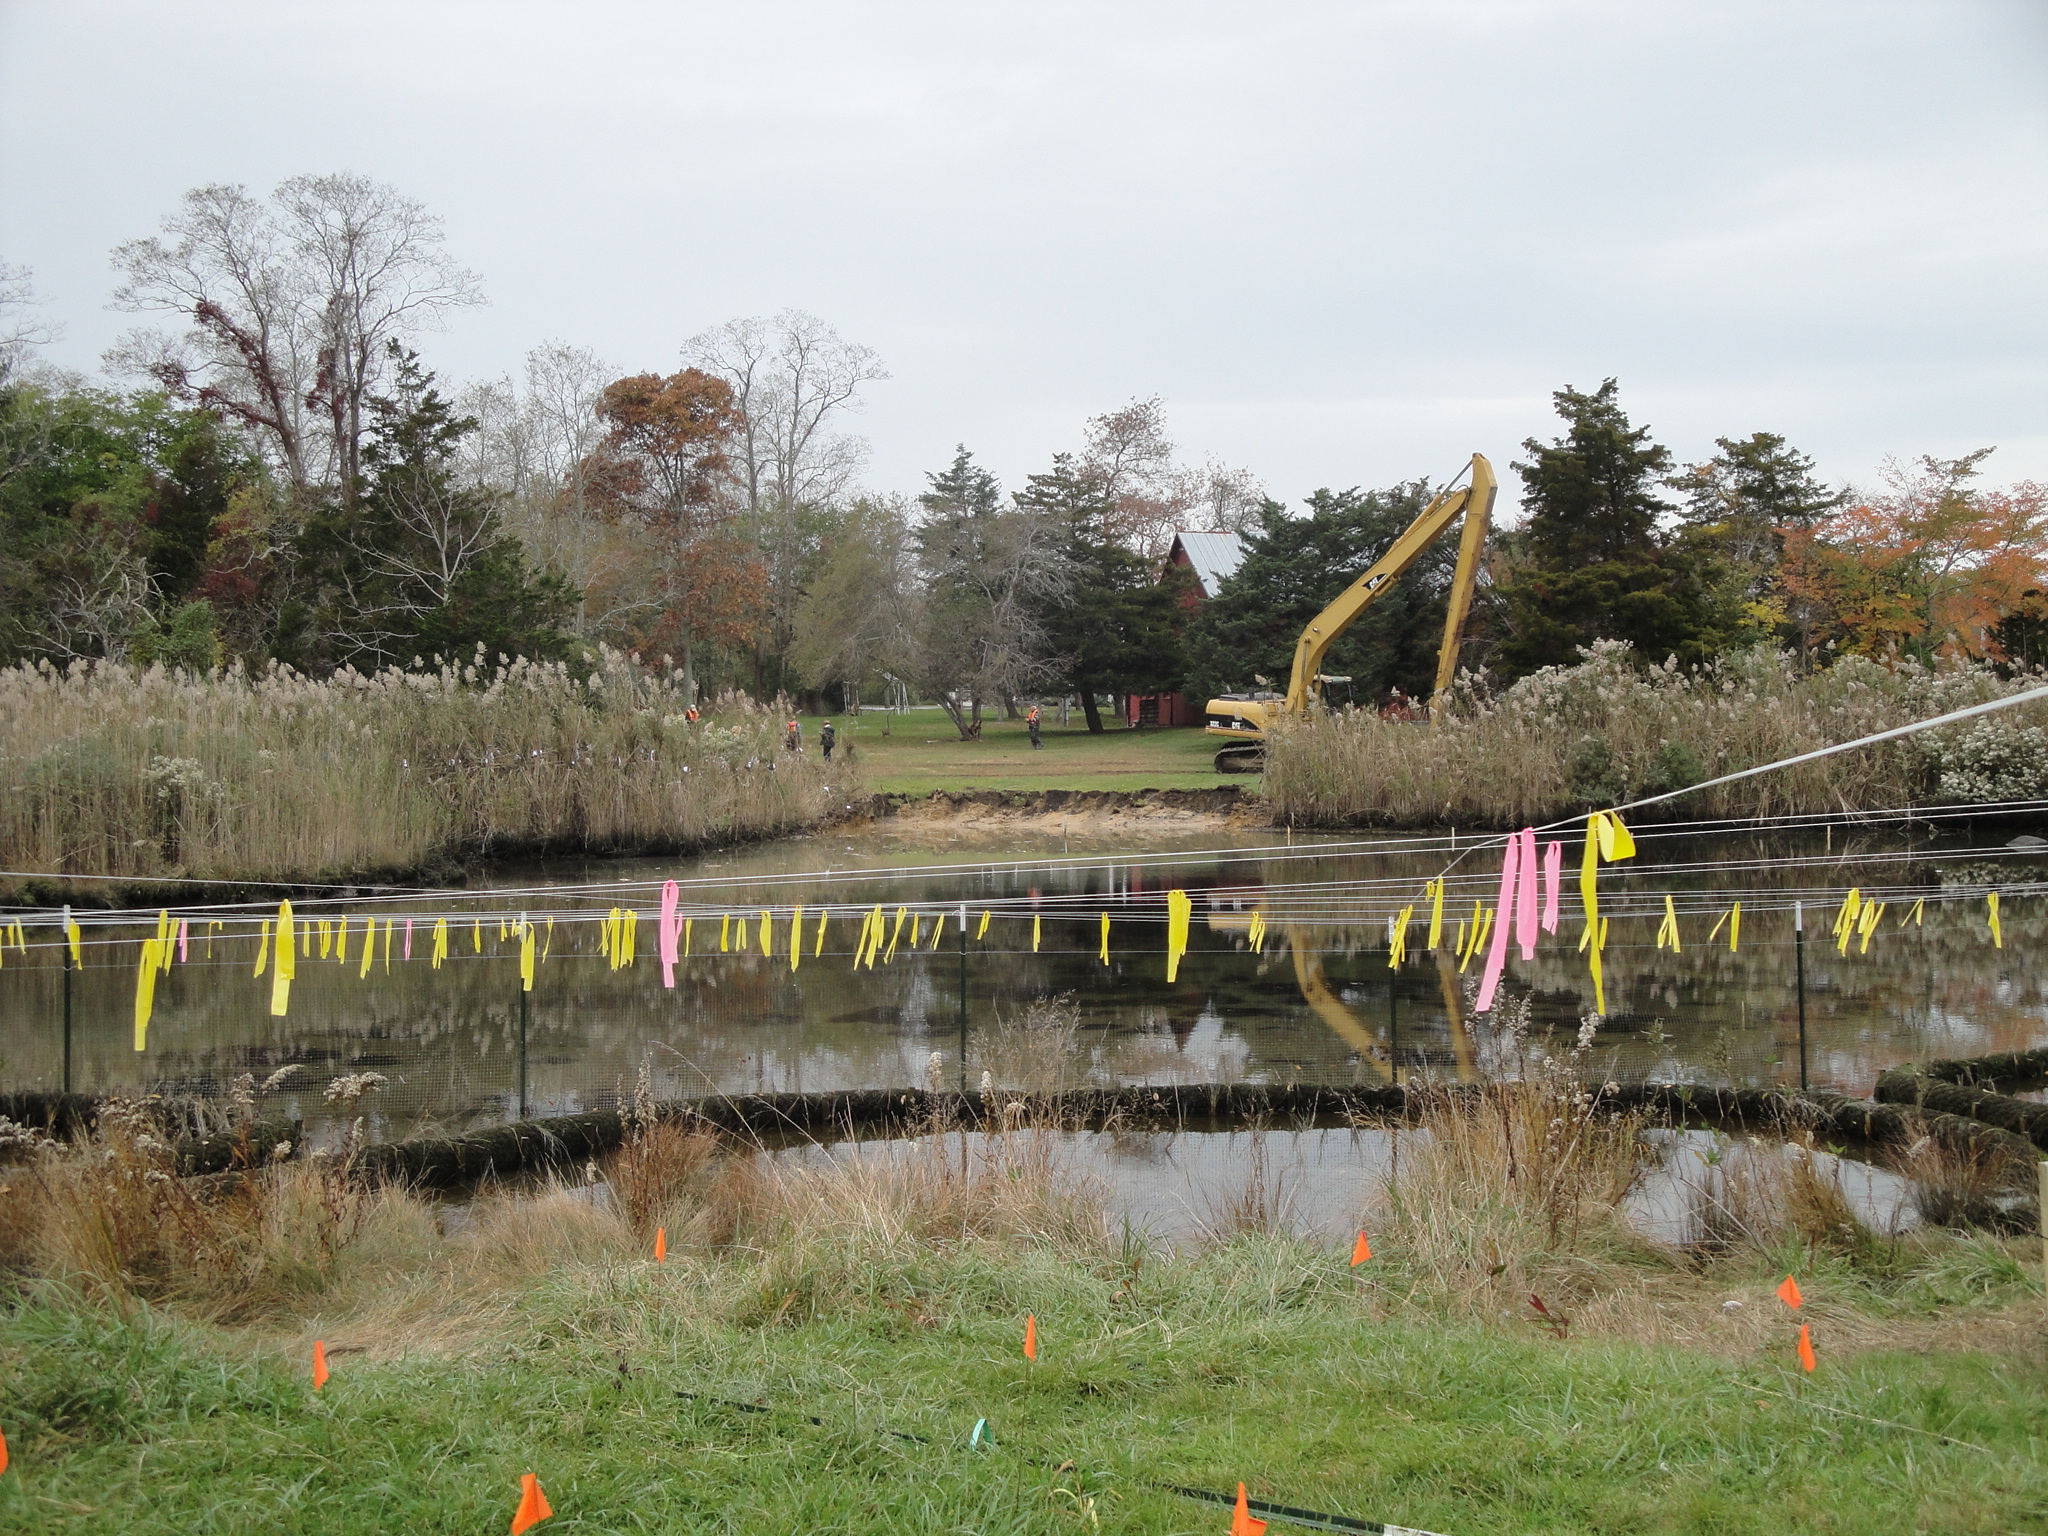 Habitat restoration on one end, removal of invasive plants on the other end.